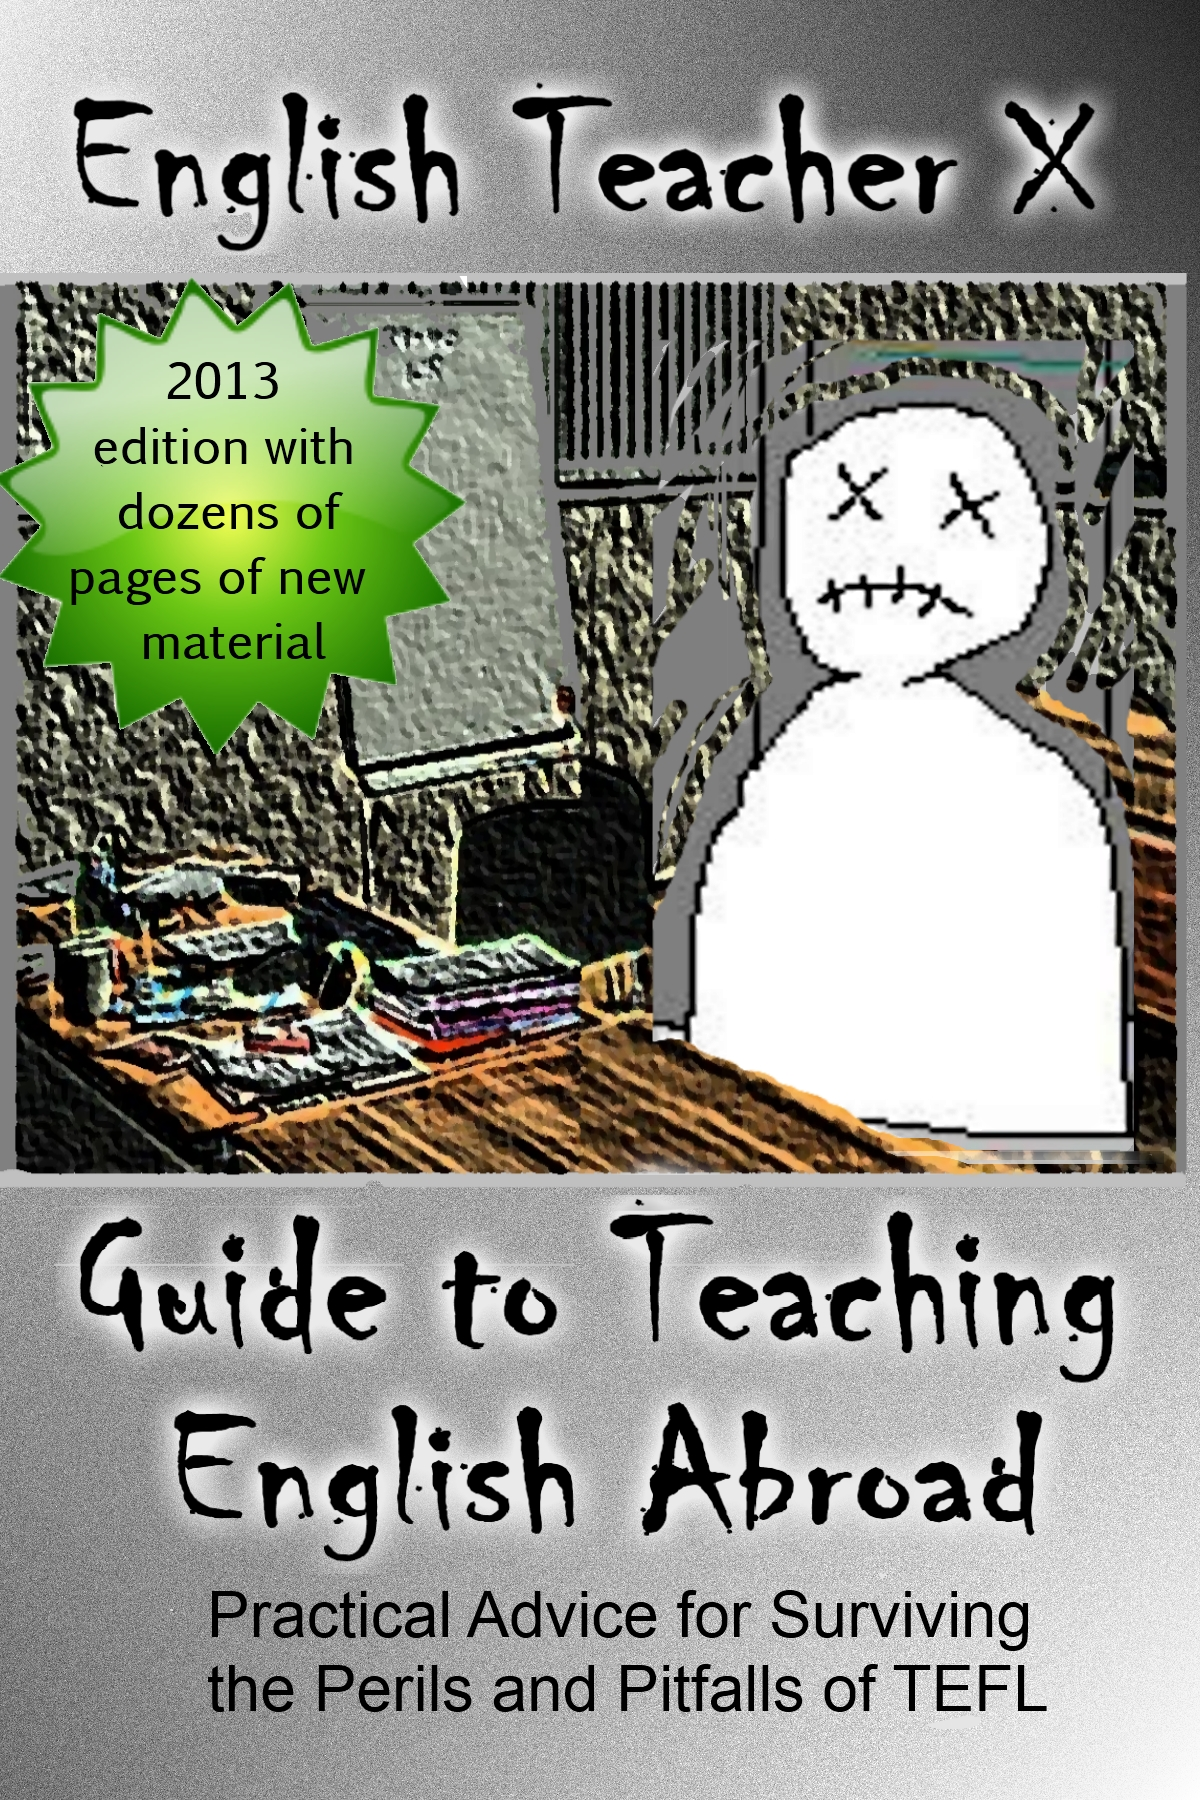 English Teacher X Guide To Teaching English Abroad (2013 Edition)